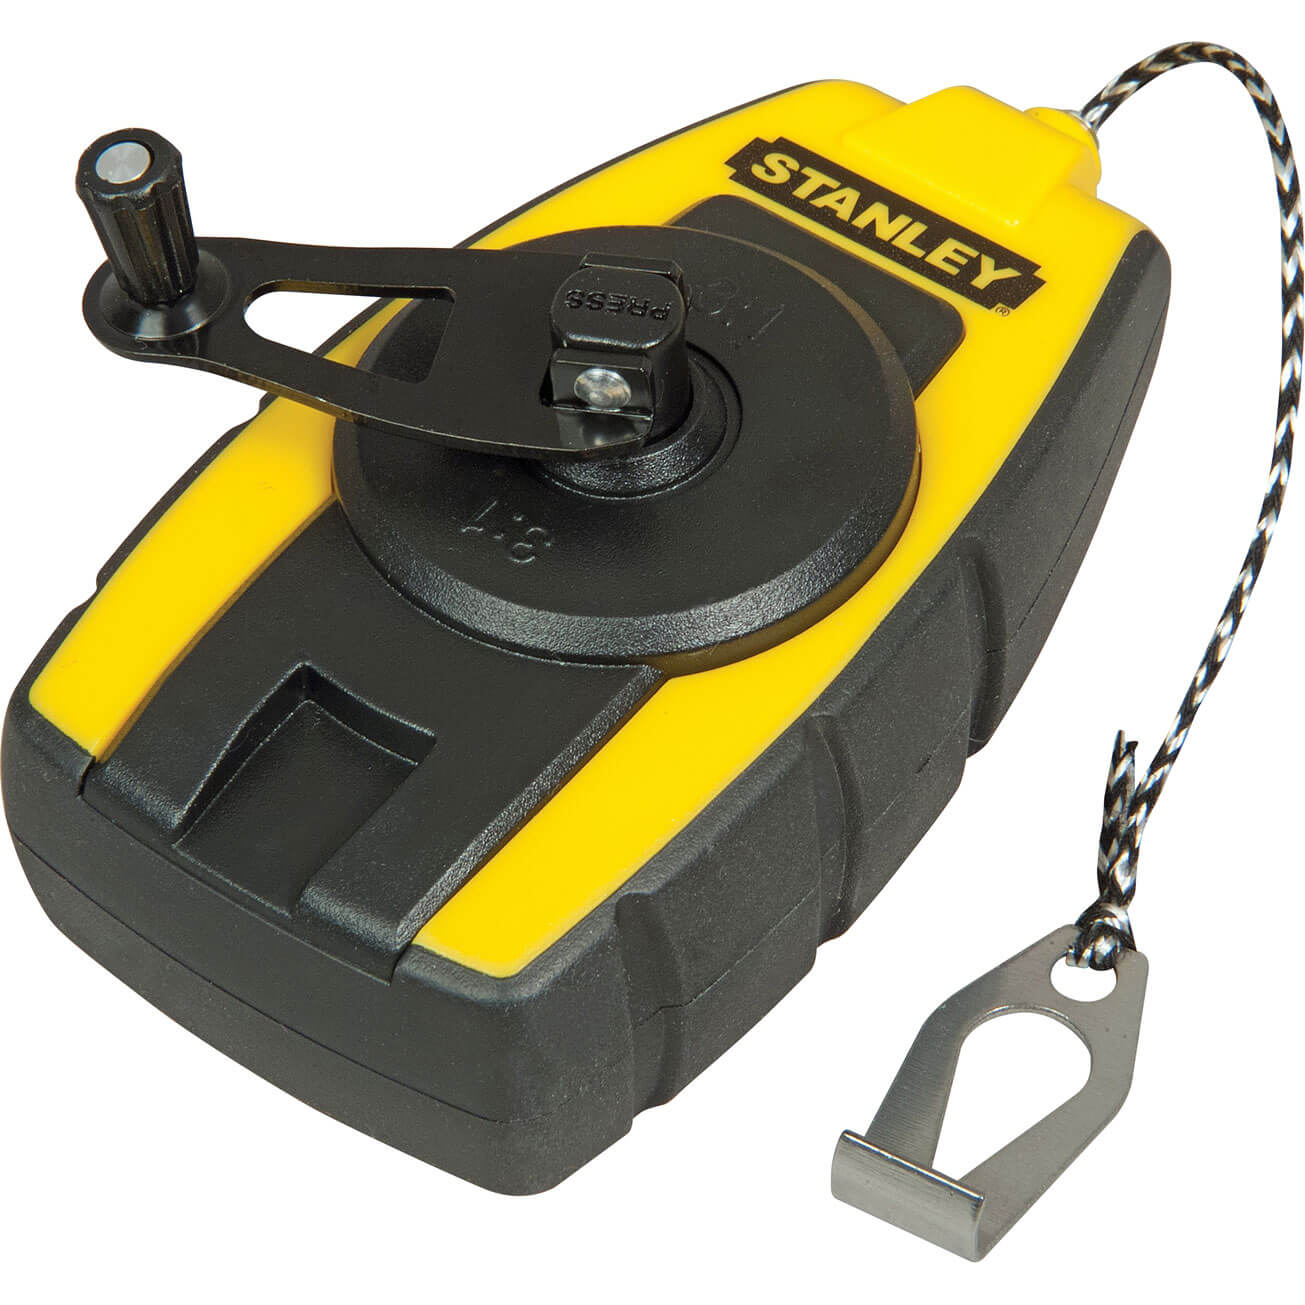 Image of 0-47-147 Compact Chalk Line